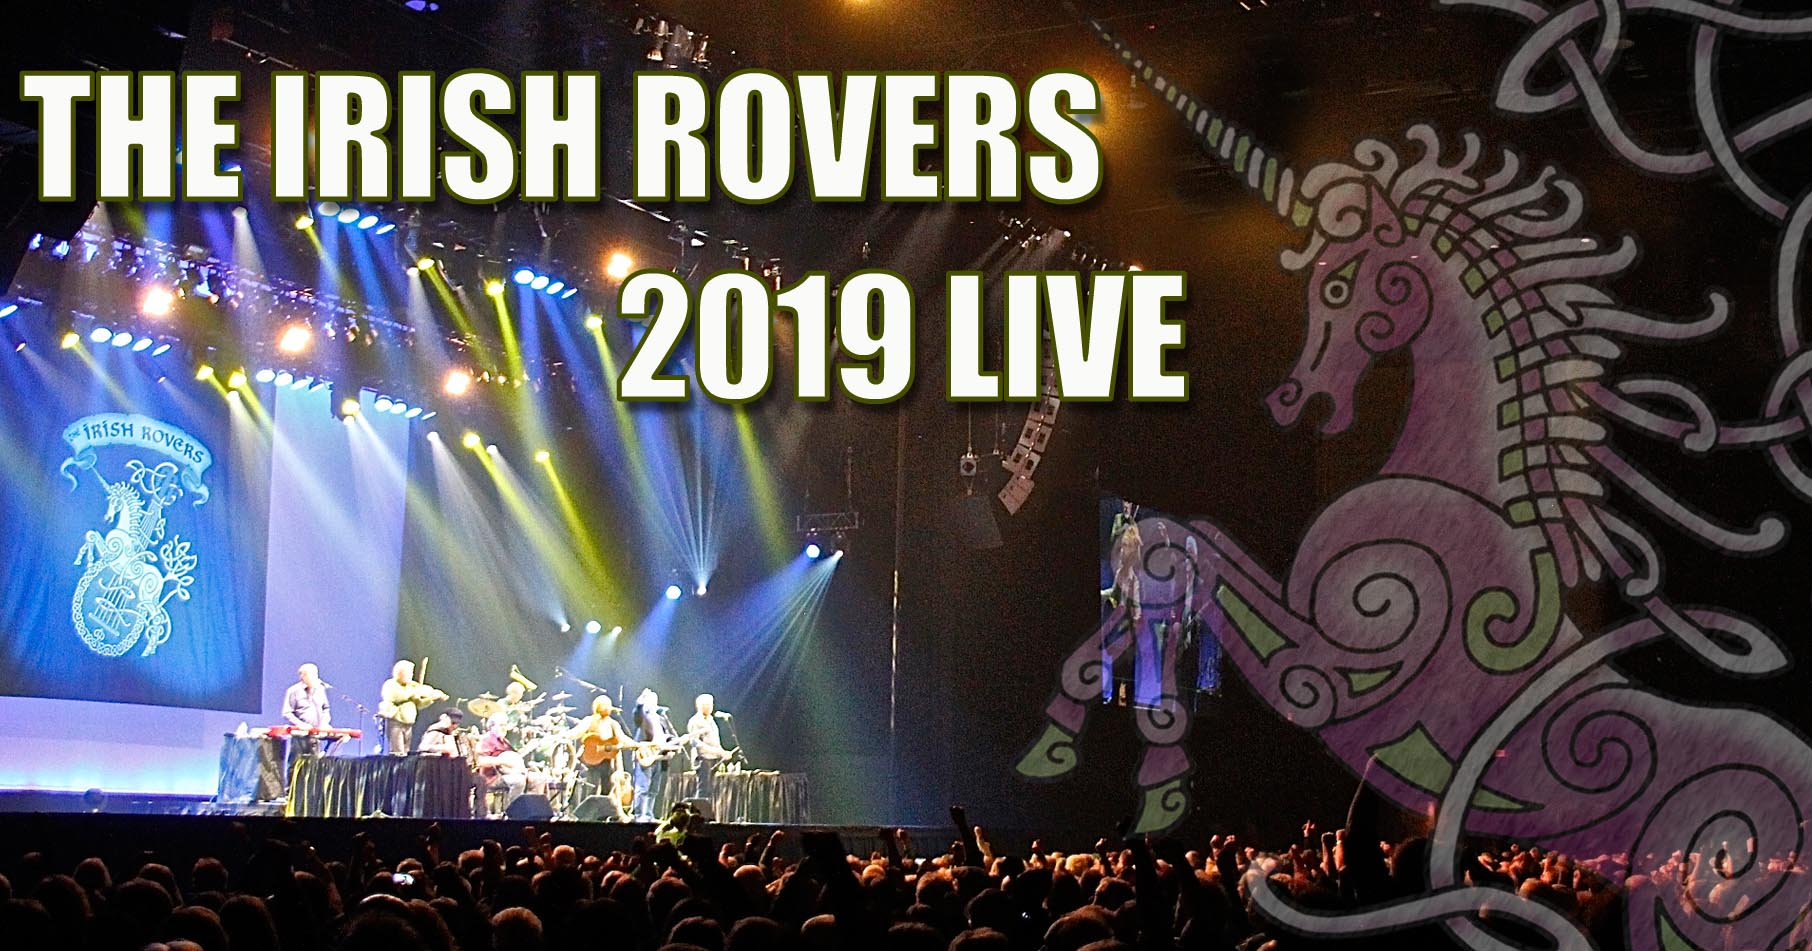 The Irish Rovers Unicorn Tour 2018